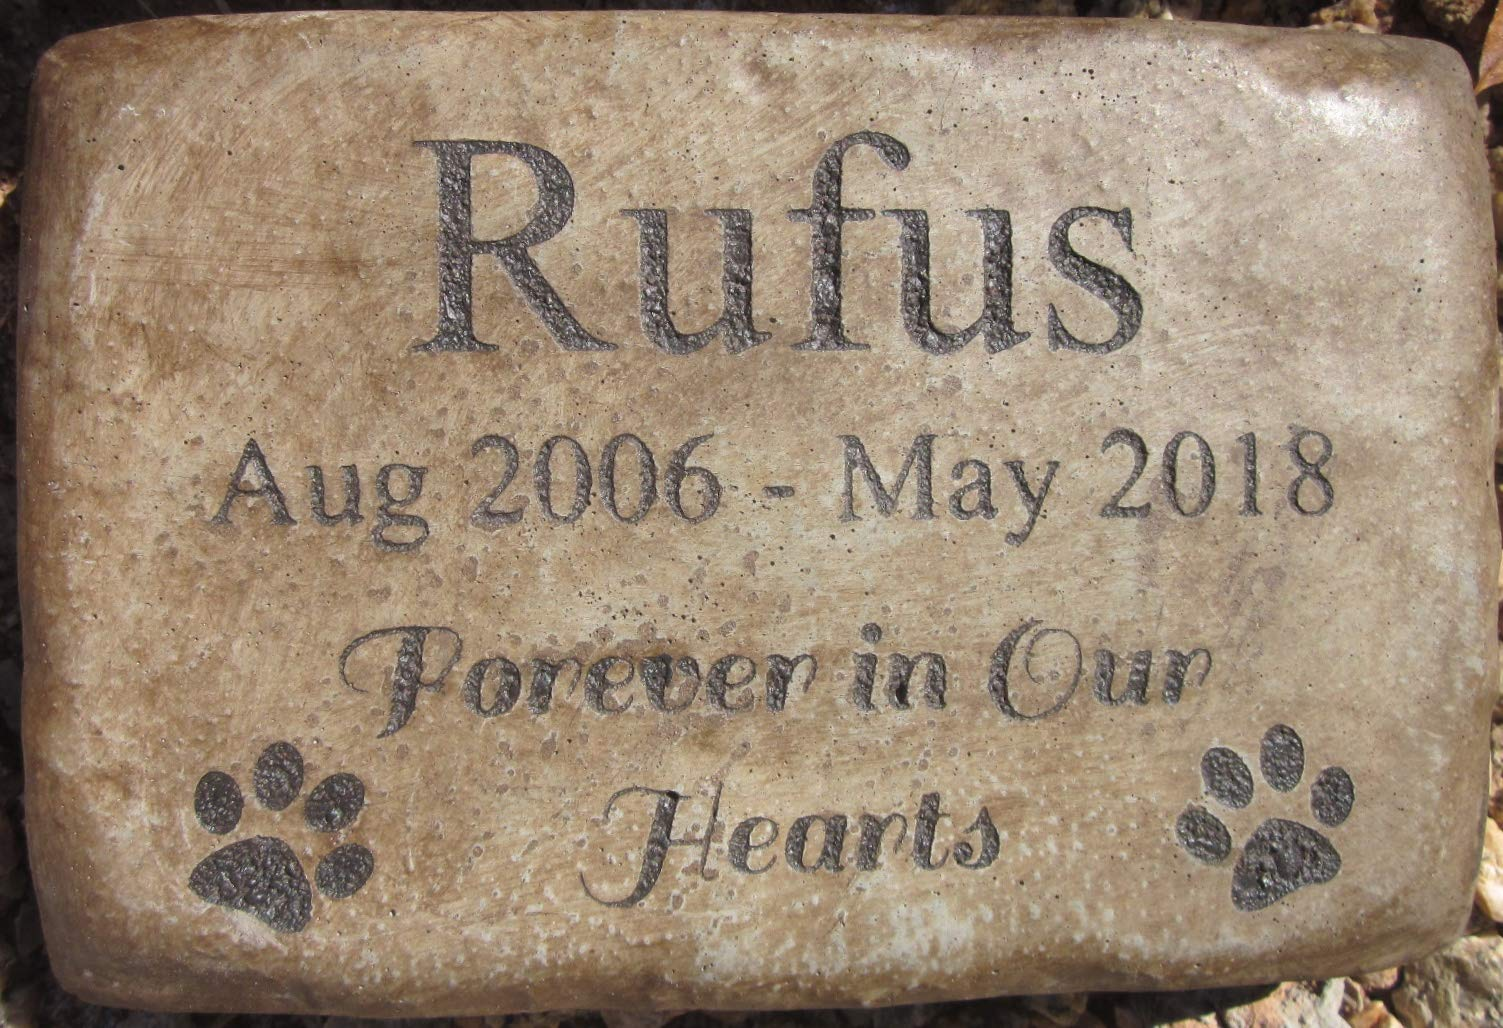 Personalized Engraved Pet Memorial Stone 8.5''x5.5'' Forever in Our Hearts Paws